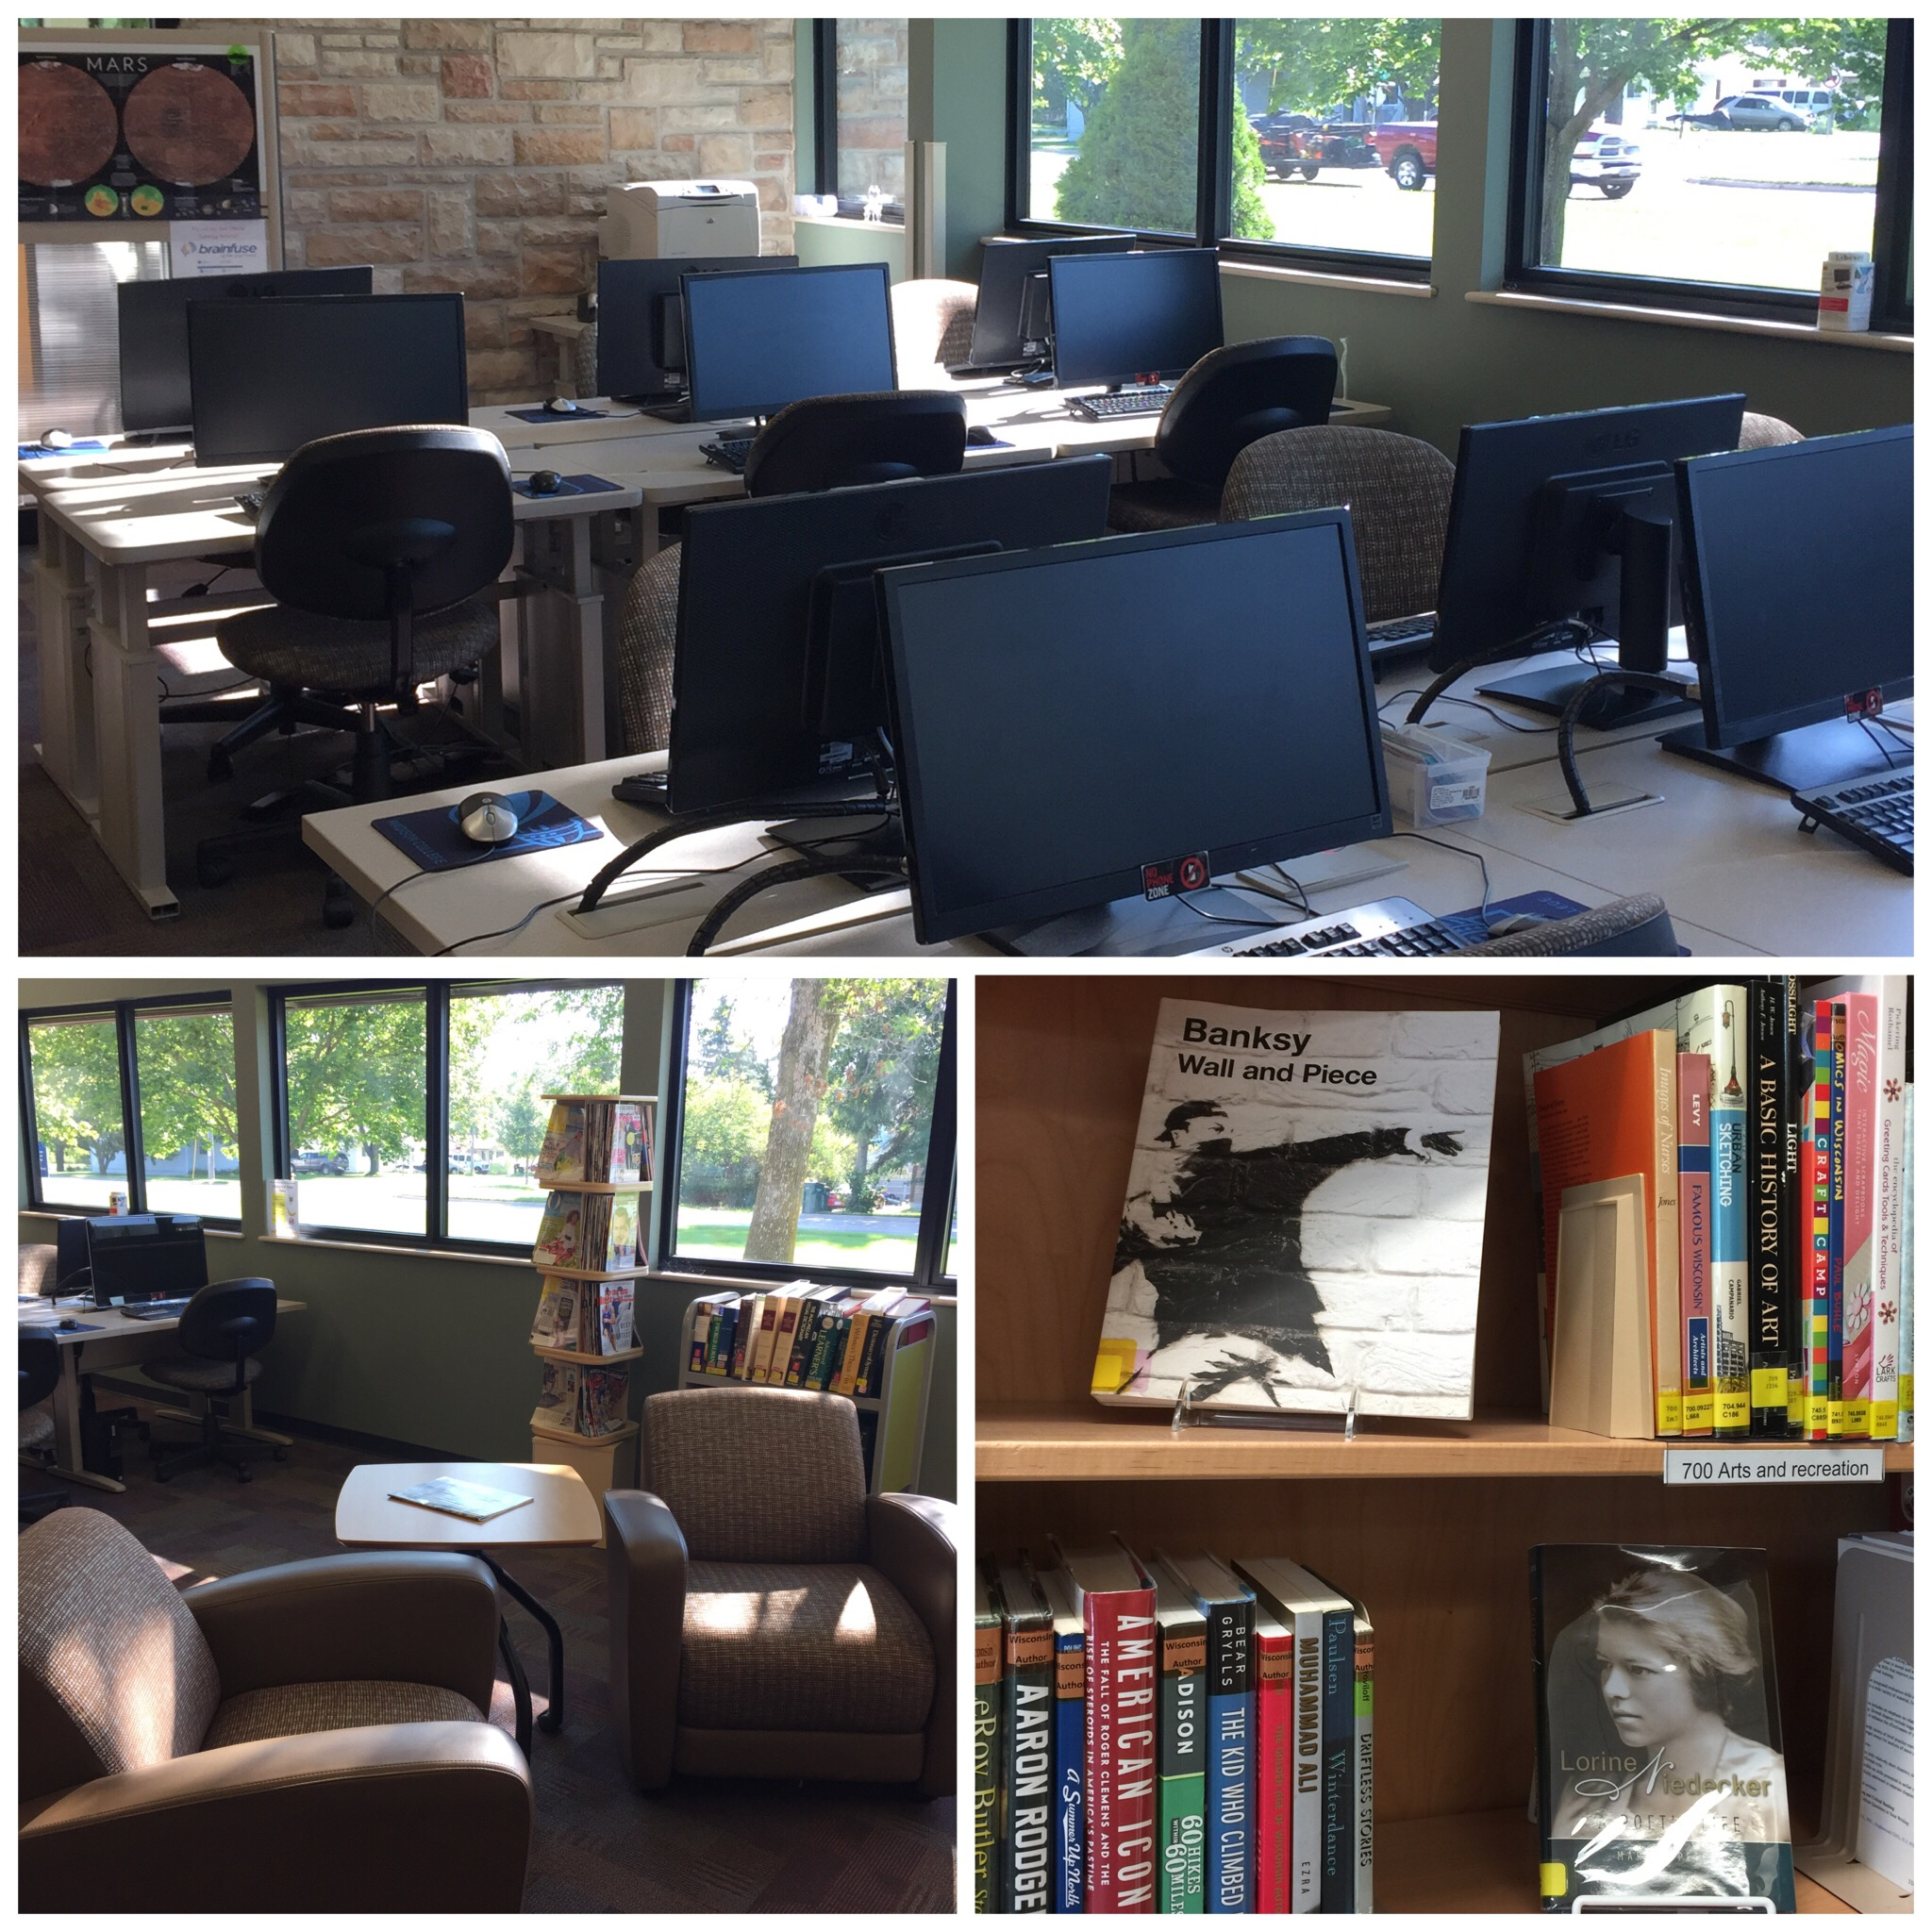 Collage of photos of computer lab, soft seating, and shelves with books